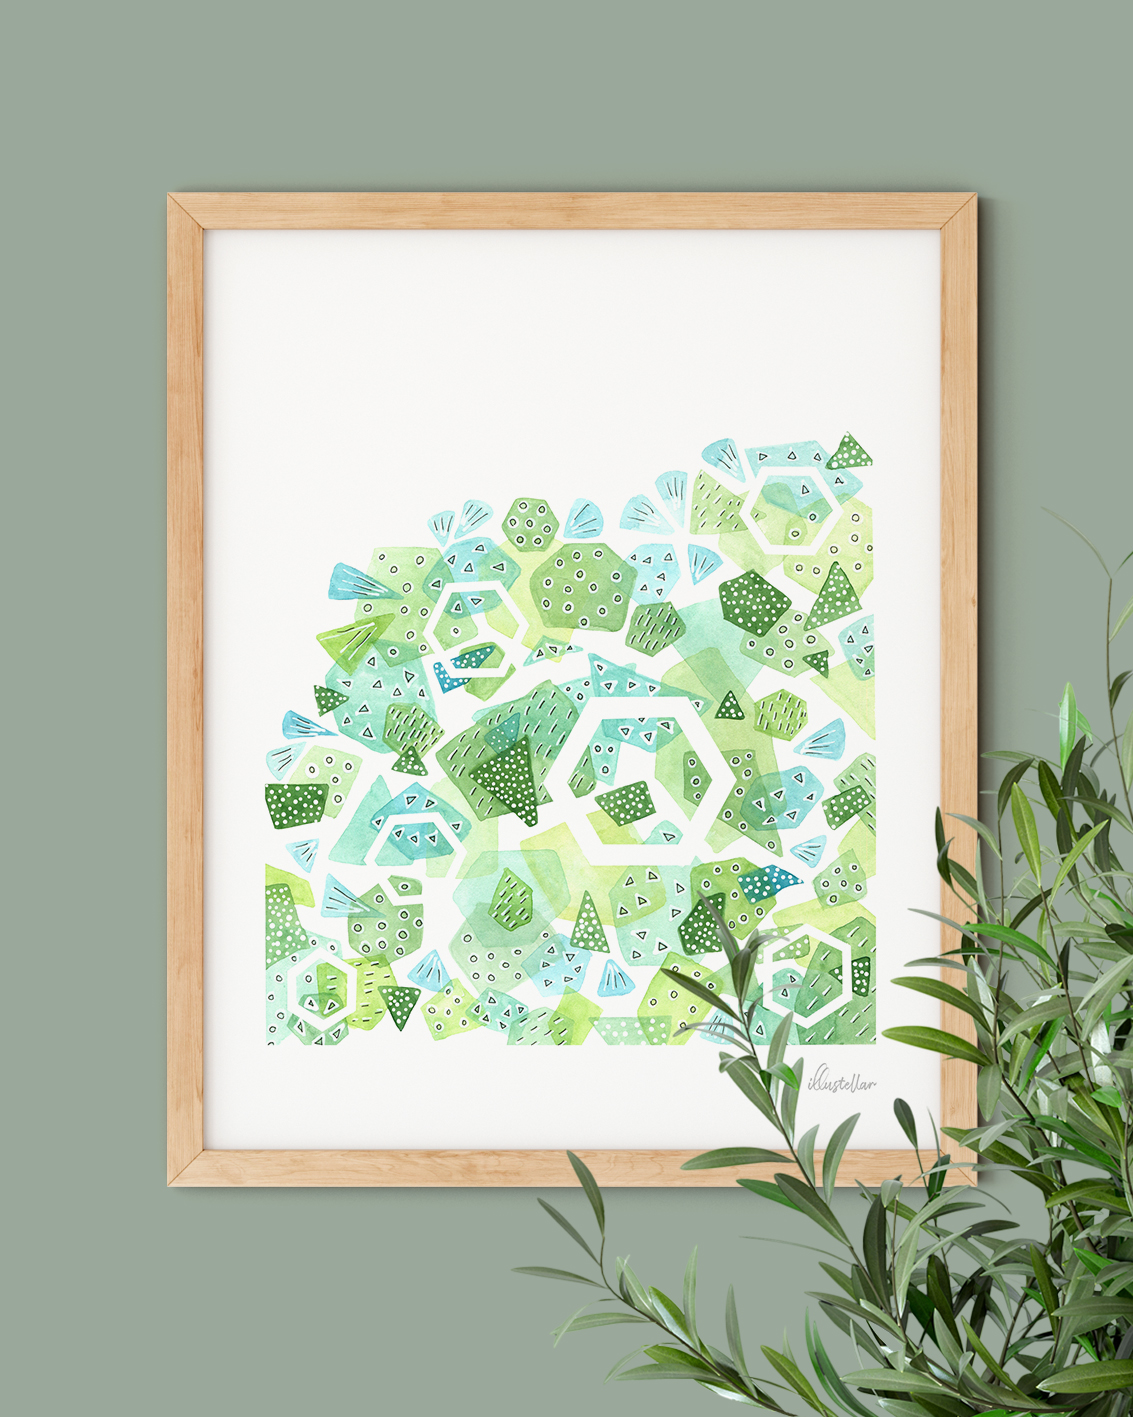 Geometric abstract green wall art in a wooden frame